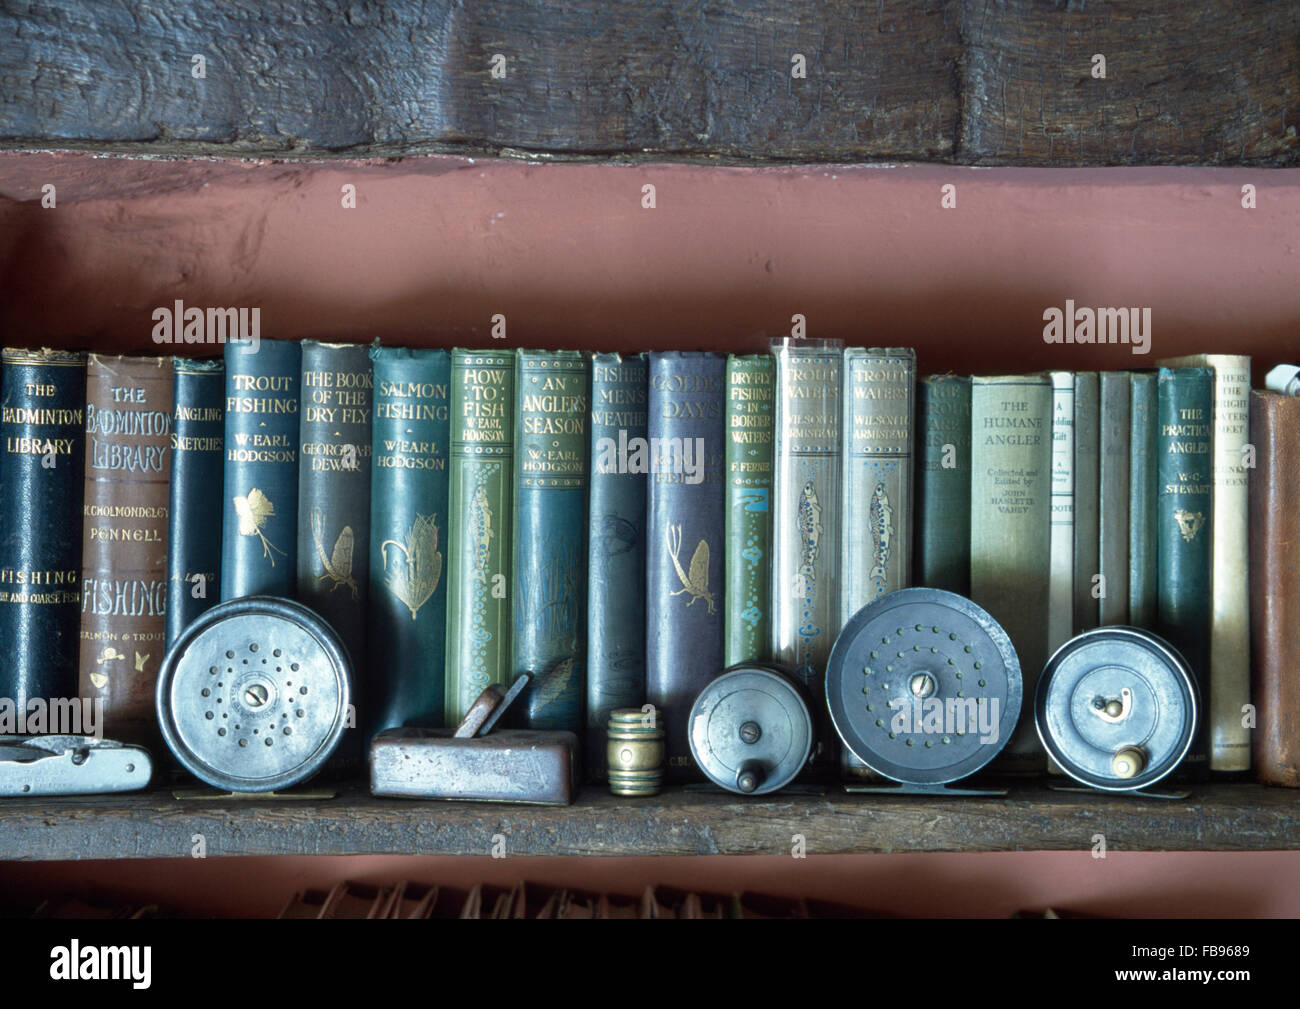 Collection of hardback vintage books on angling on shelf with antique angling equipment - Stock Image